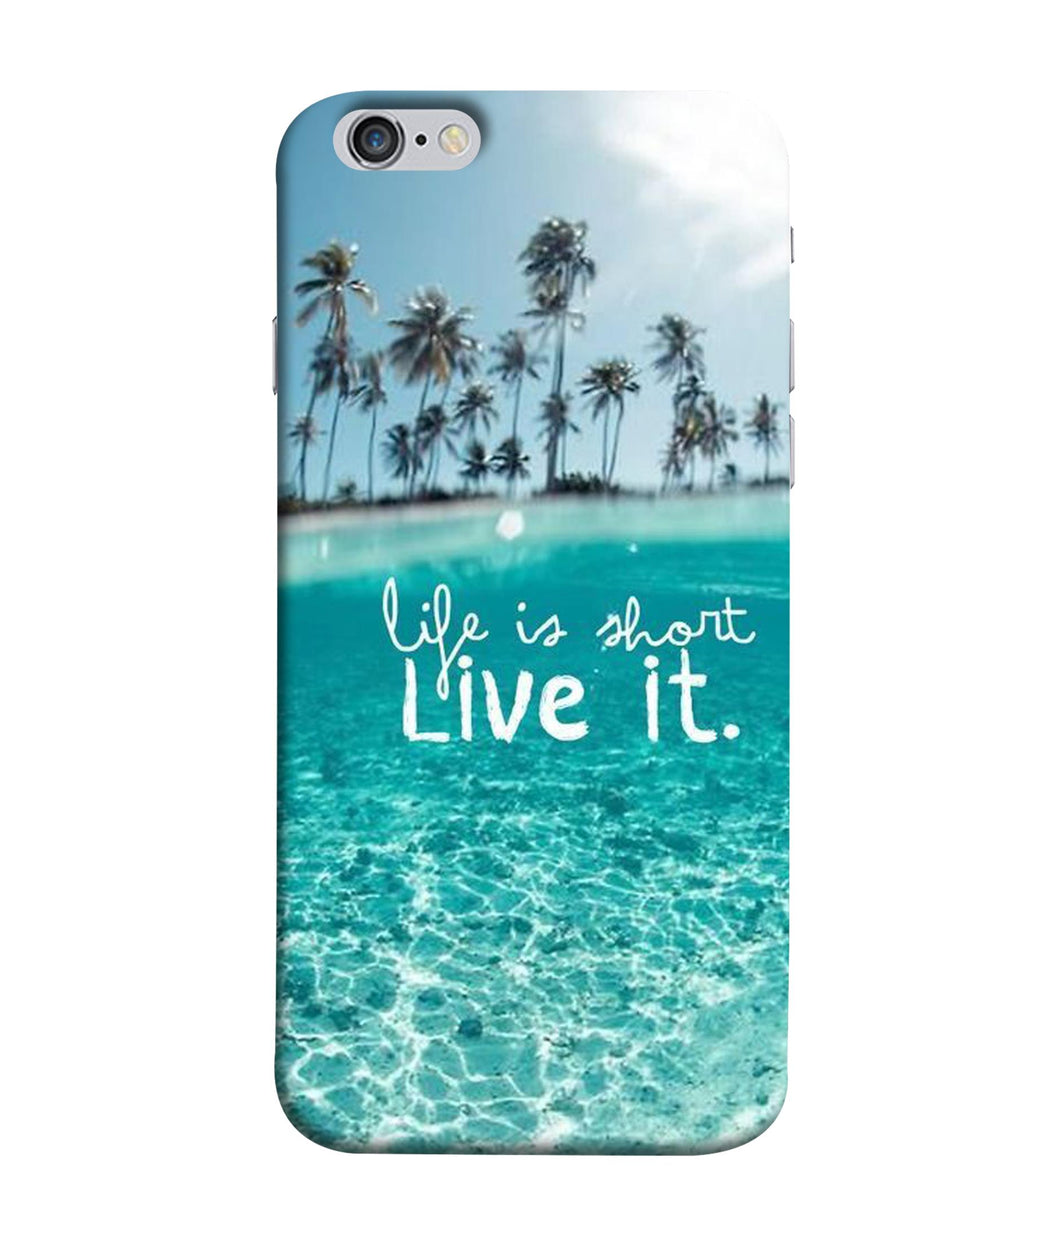 Apple Iphone 6 Live Life Mobile cover